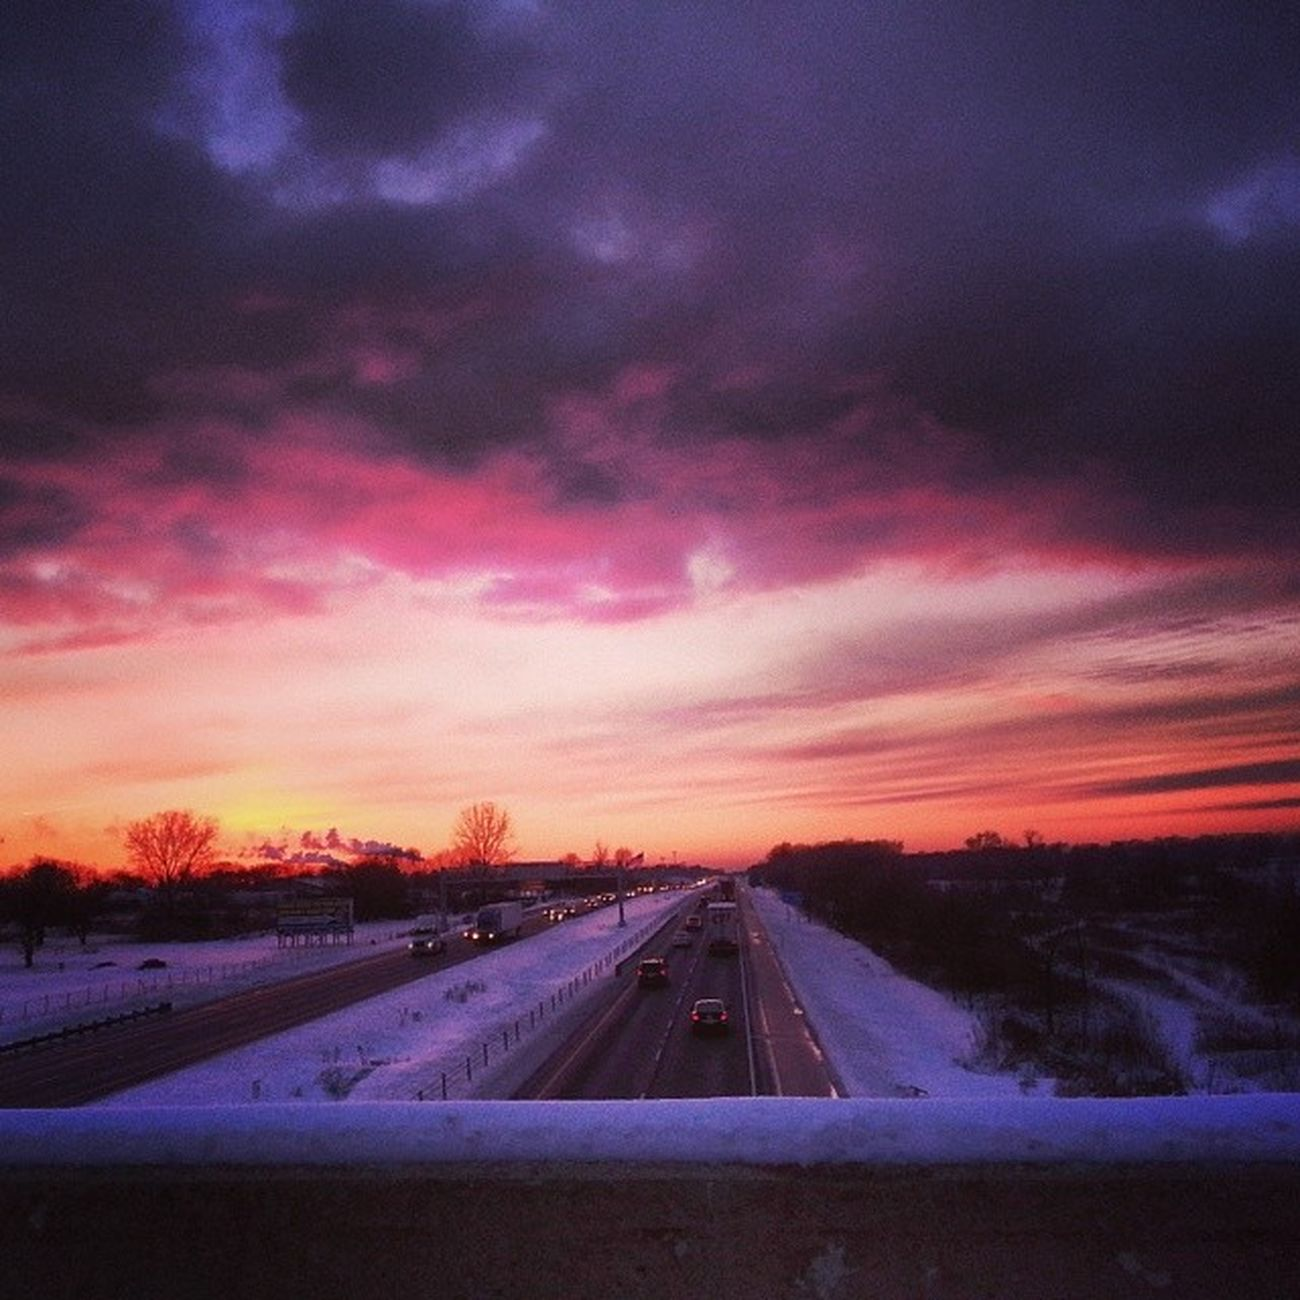 Illinois , Channel7news , Sunset , Snow , viewbug, dontjump, peace, jule, joliet, bridge I80, highways, tracyjule, tracyj2472, alone, totheworldyoumaybeone, theweatherchannel, tlc, sunset, skyporn,chicagonews, foxchicago